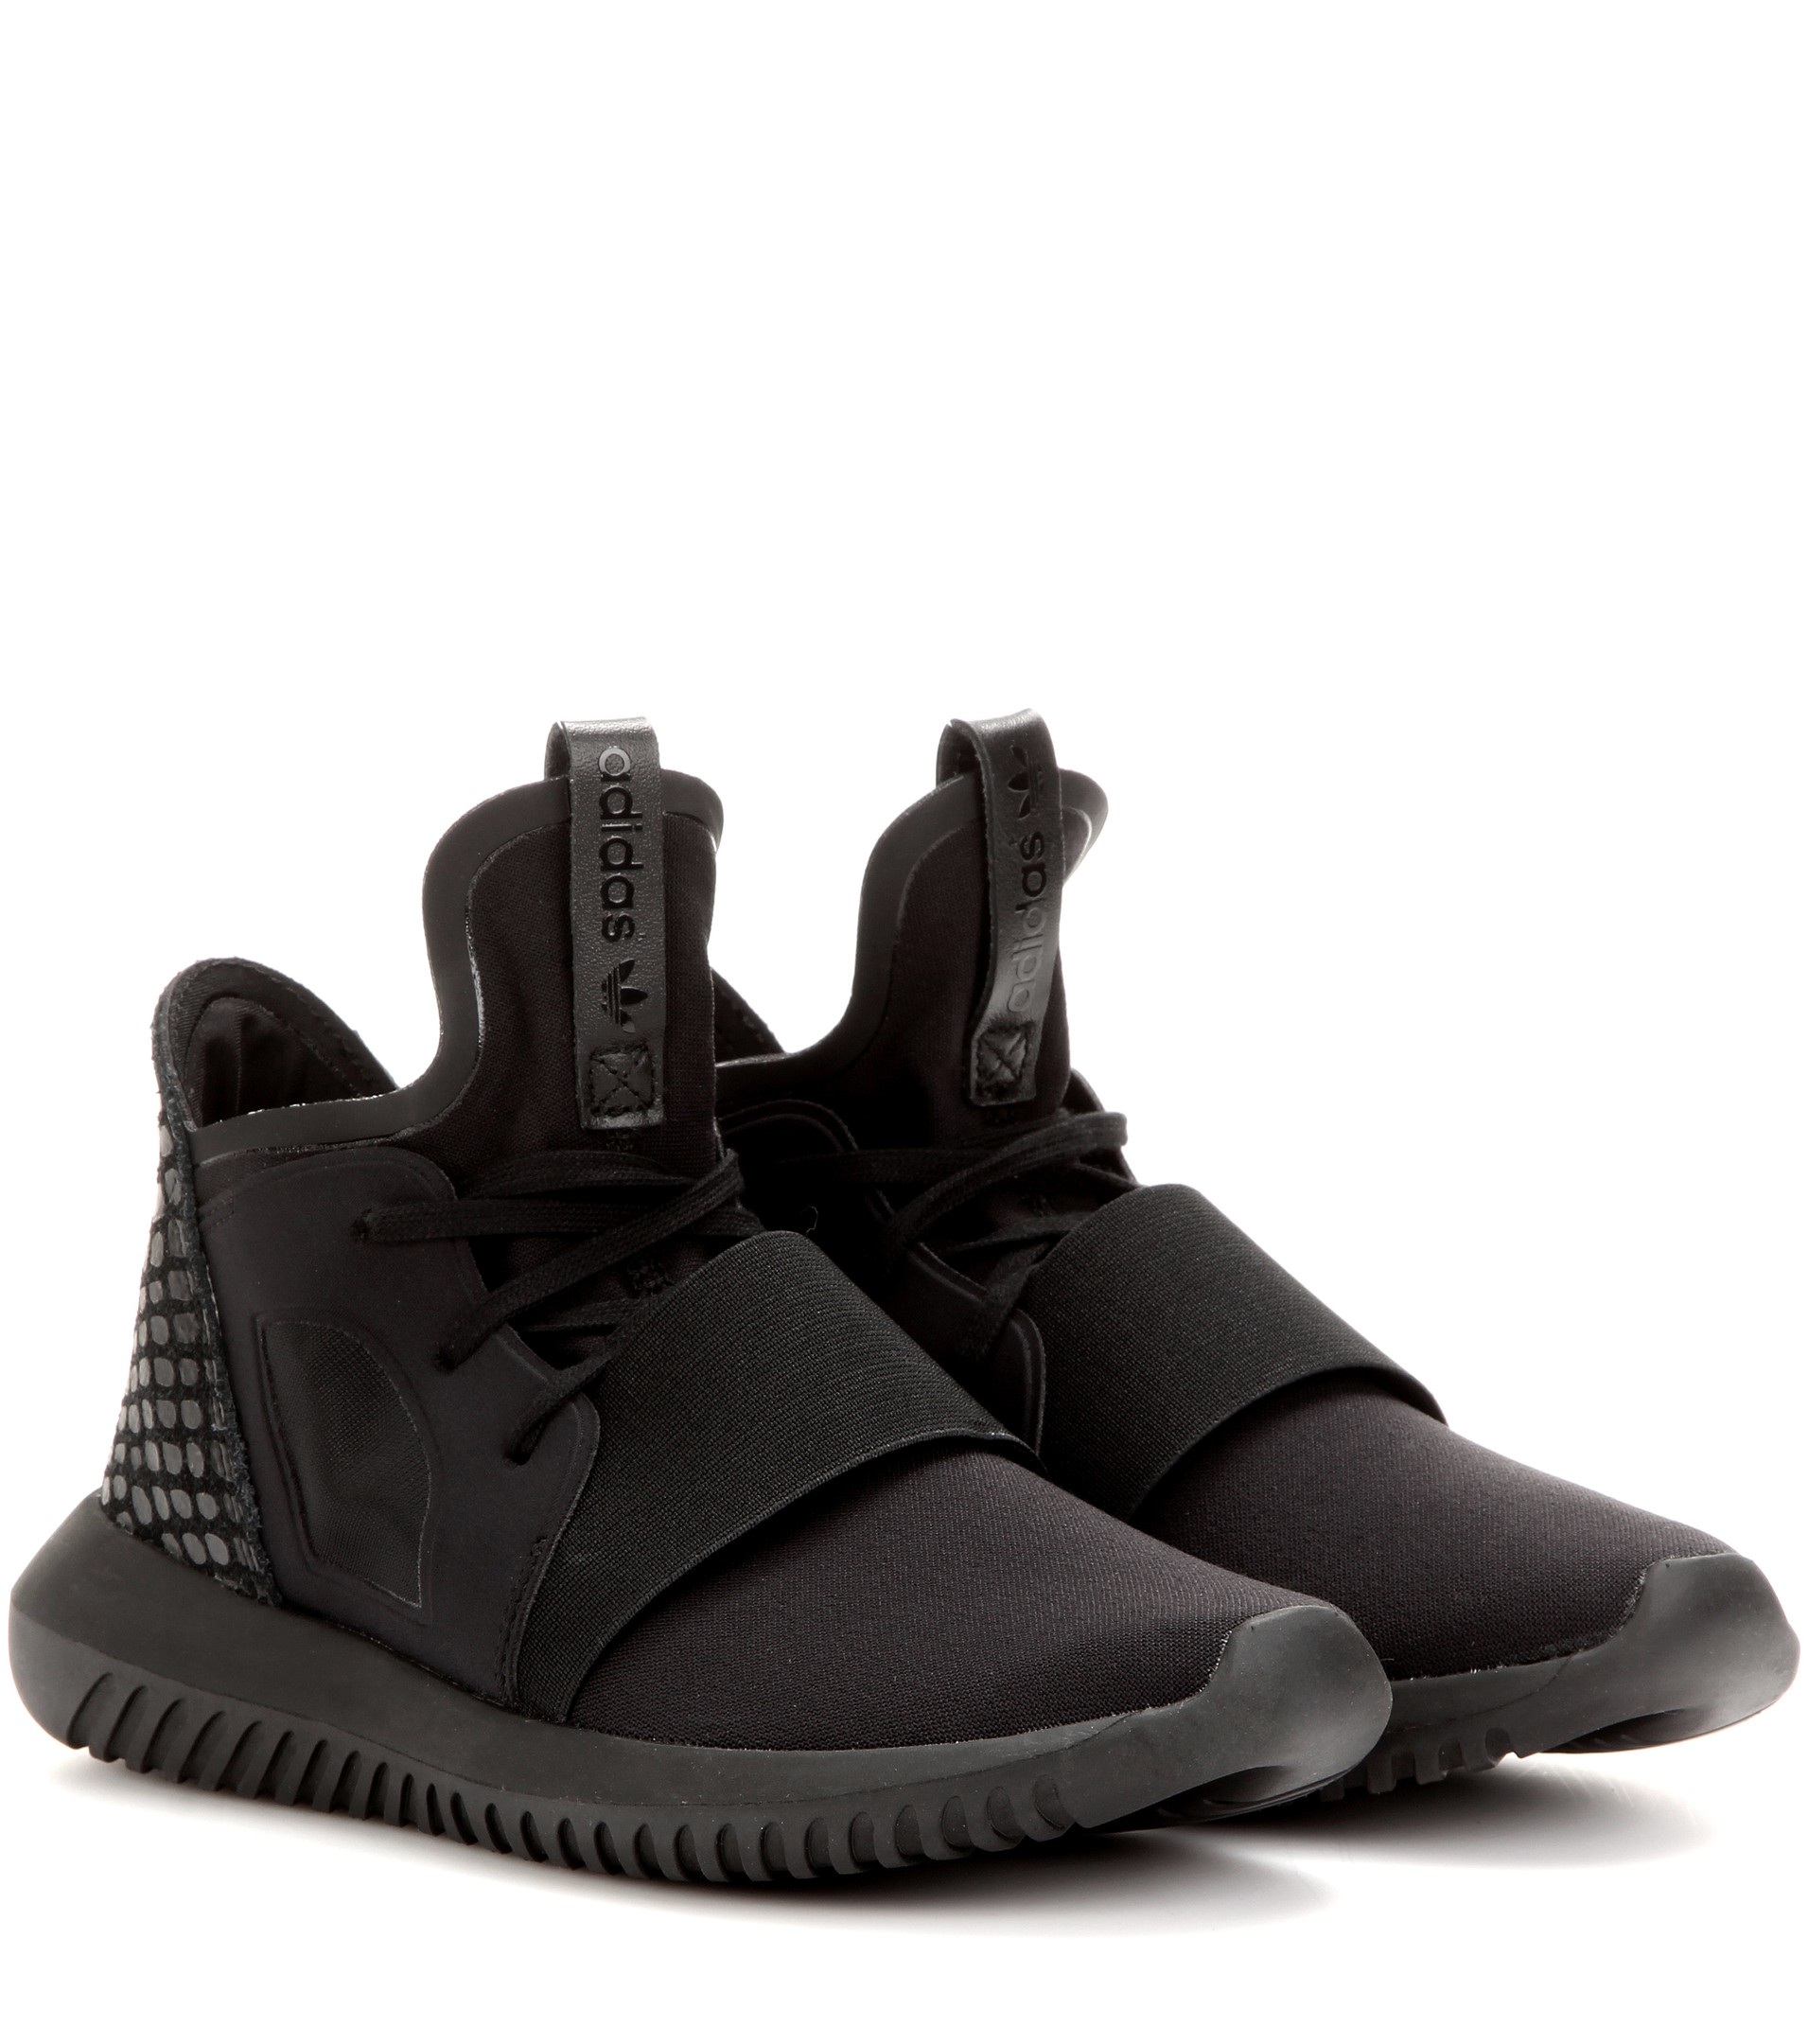 Adidas Tubular Radial Shoes Gold adidas US